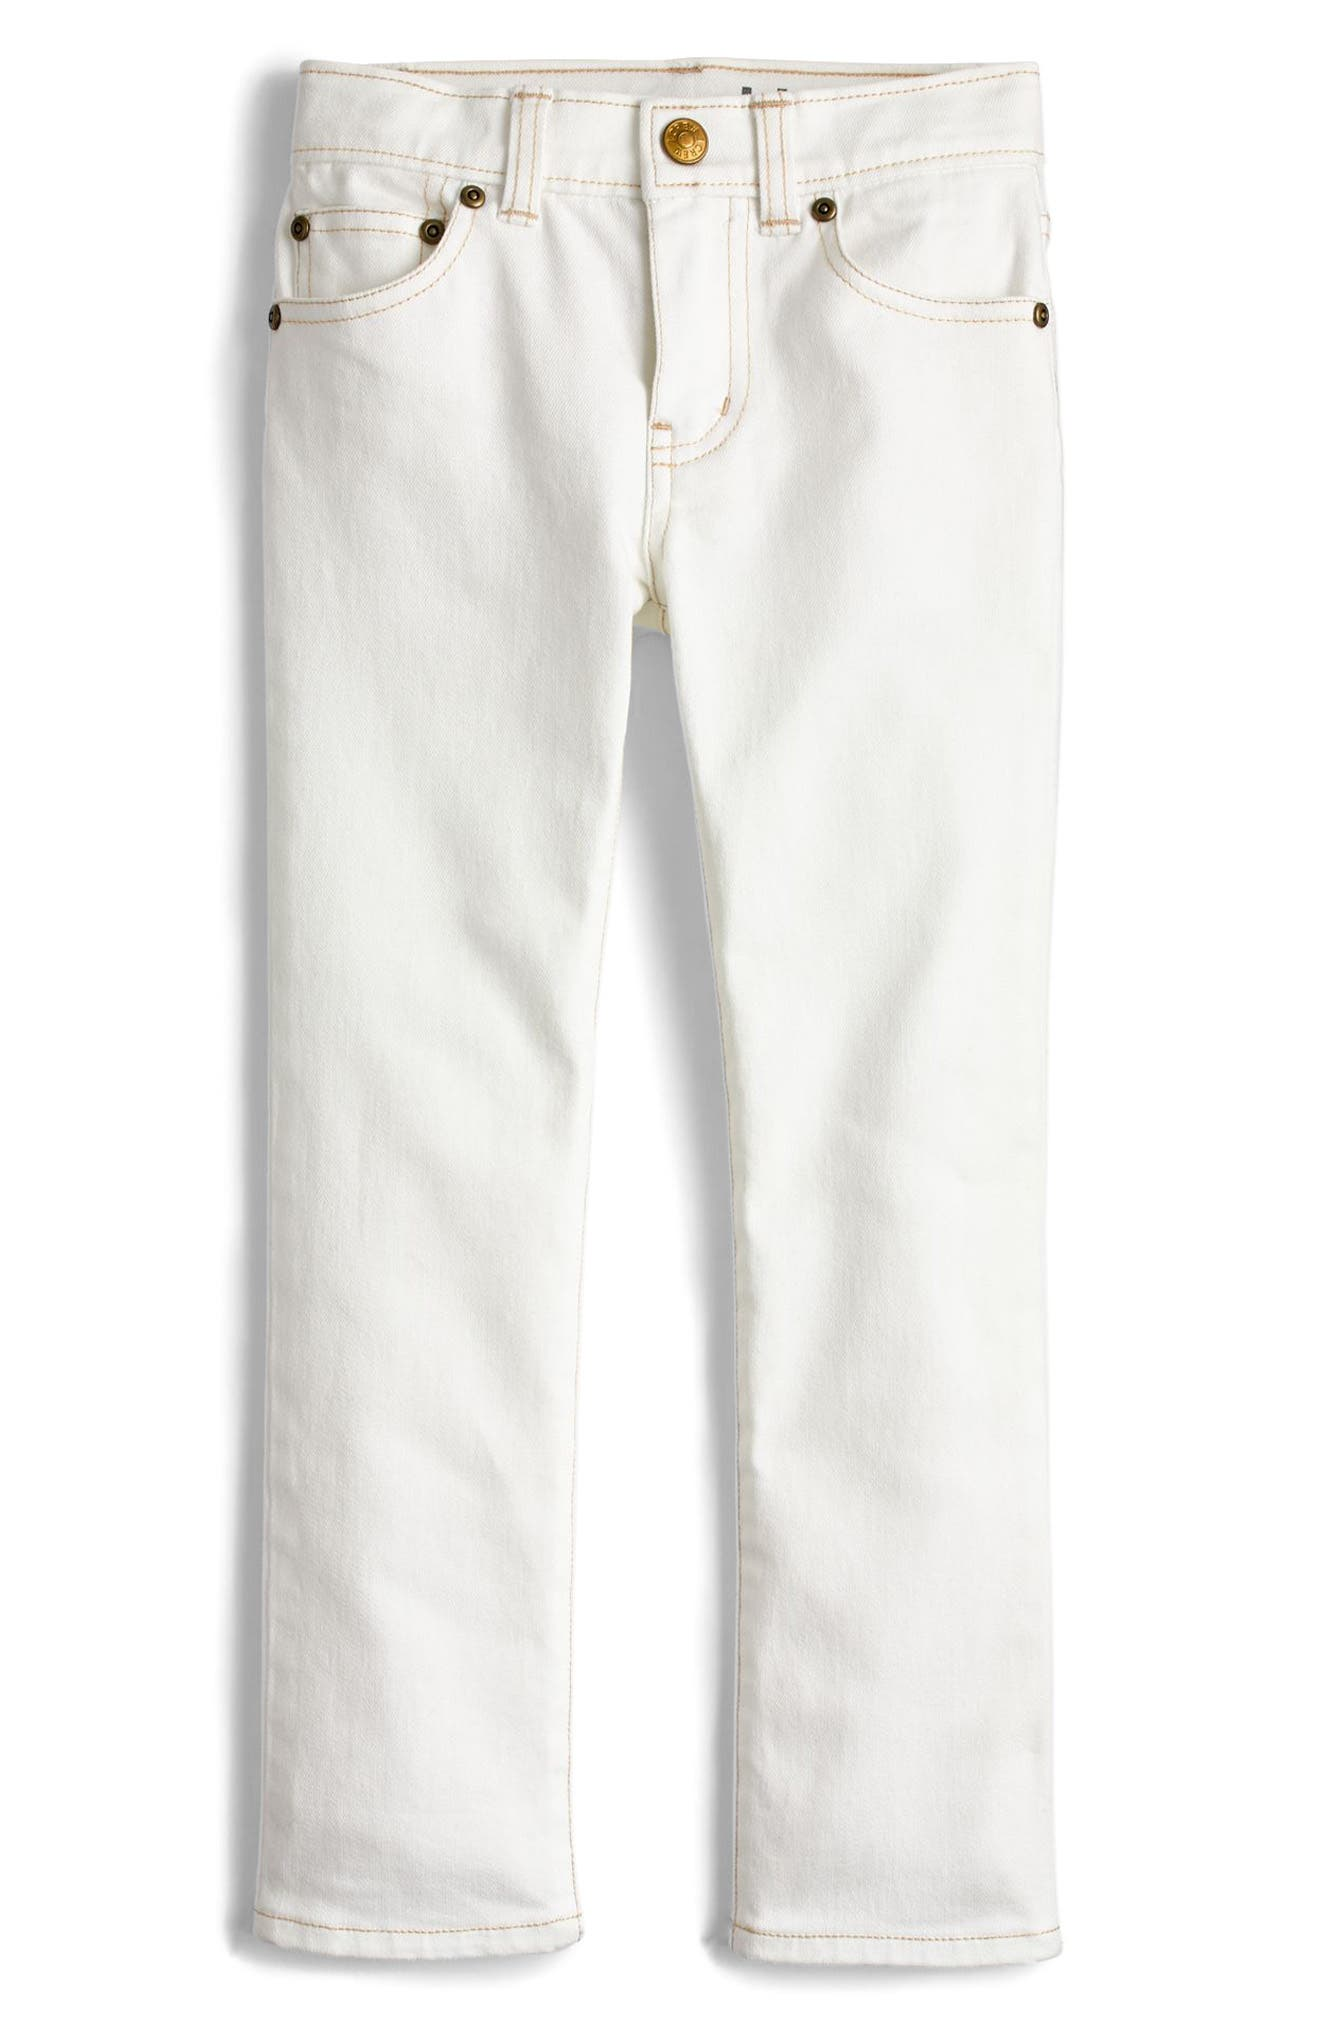 Stretch Skinny Fit Jeans,                             Main thumbnail 1, color,                             Bleach White